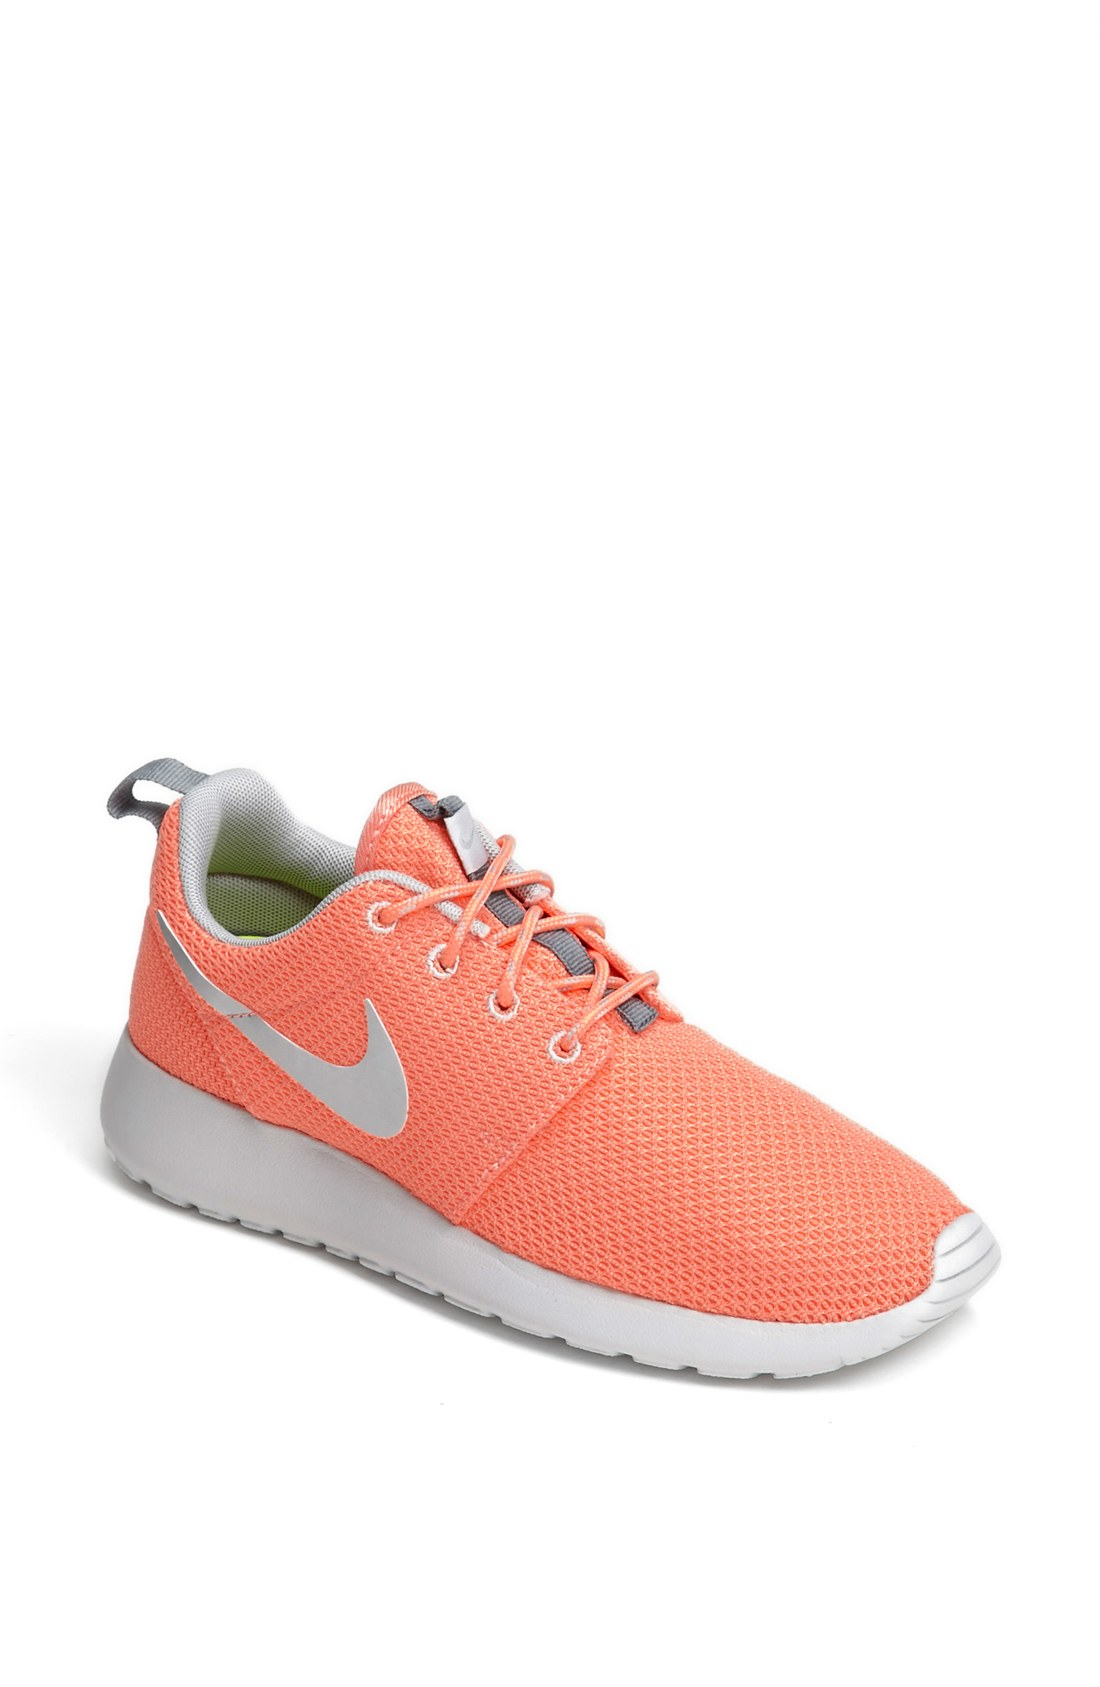 nike roshe run sneaker in orange atomic pink silver. Black Bedroom Furniture Sets. Home Design Ideas